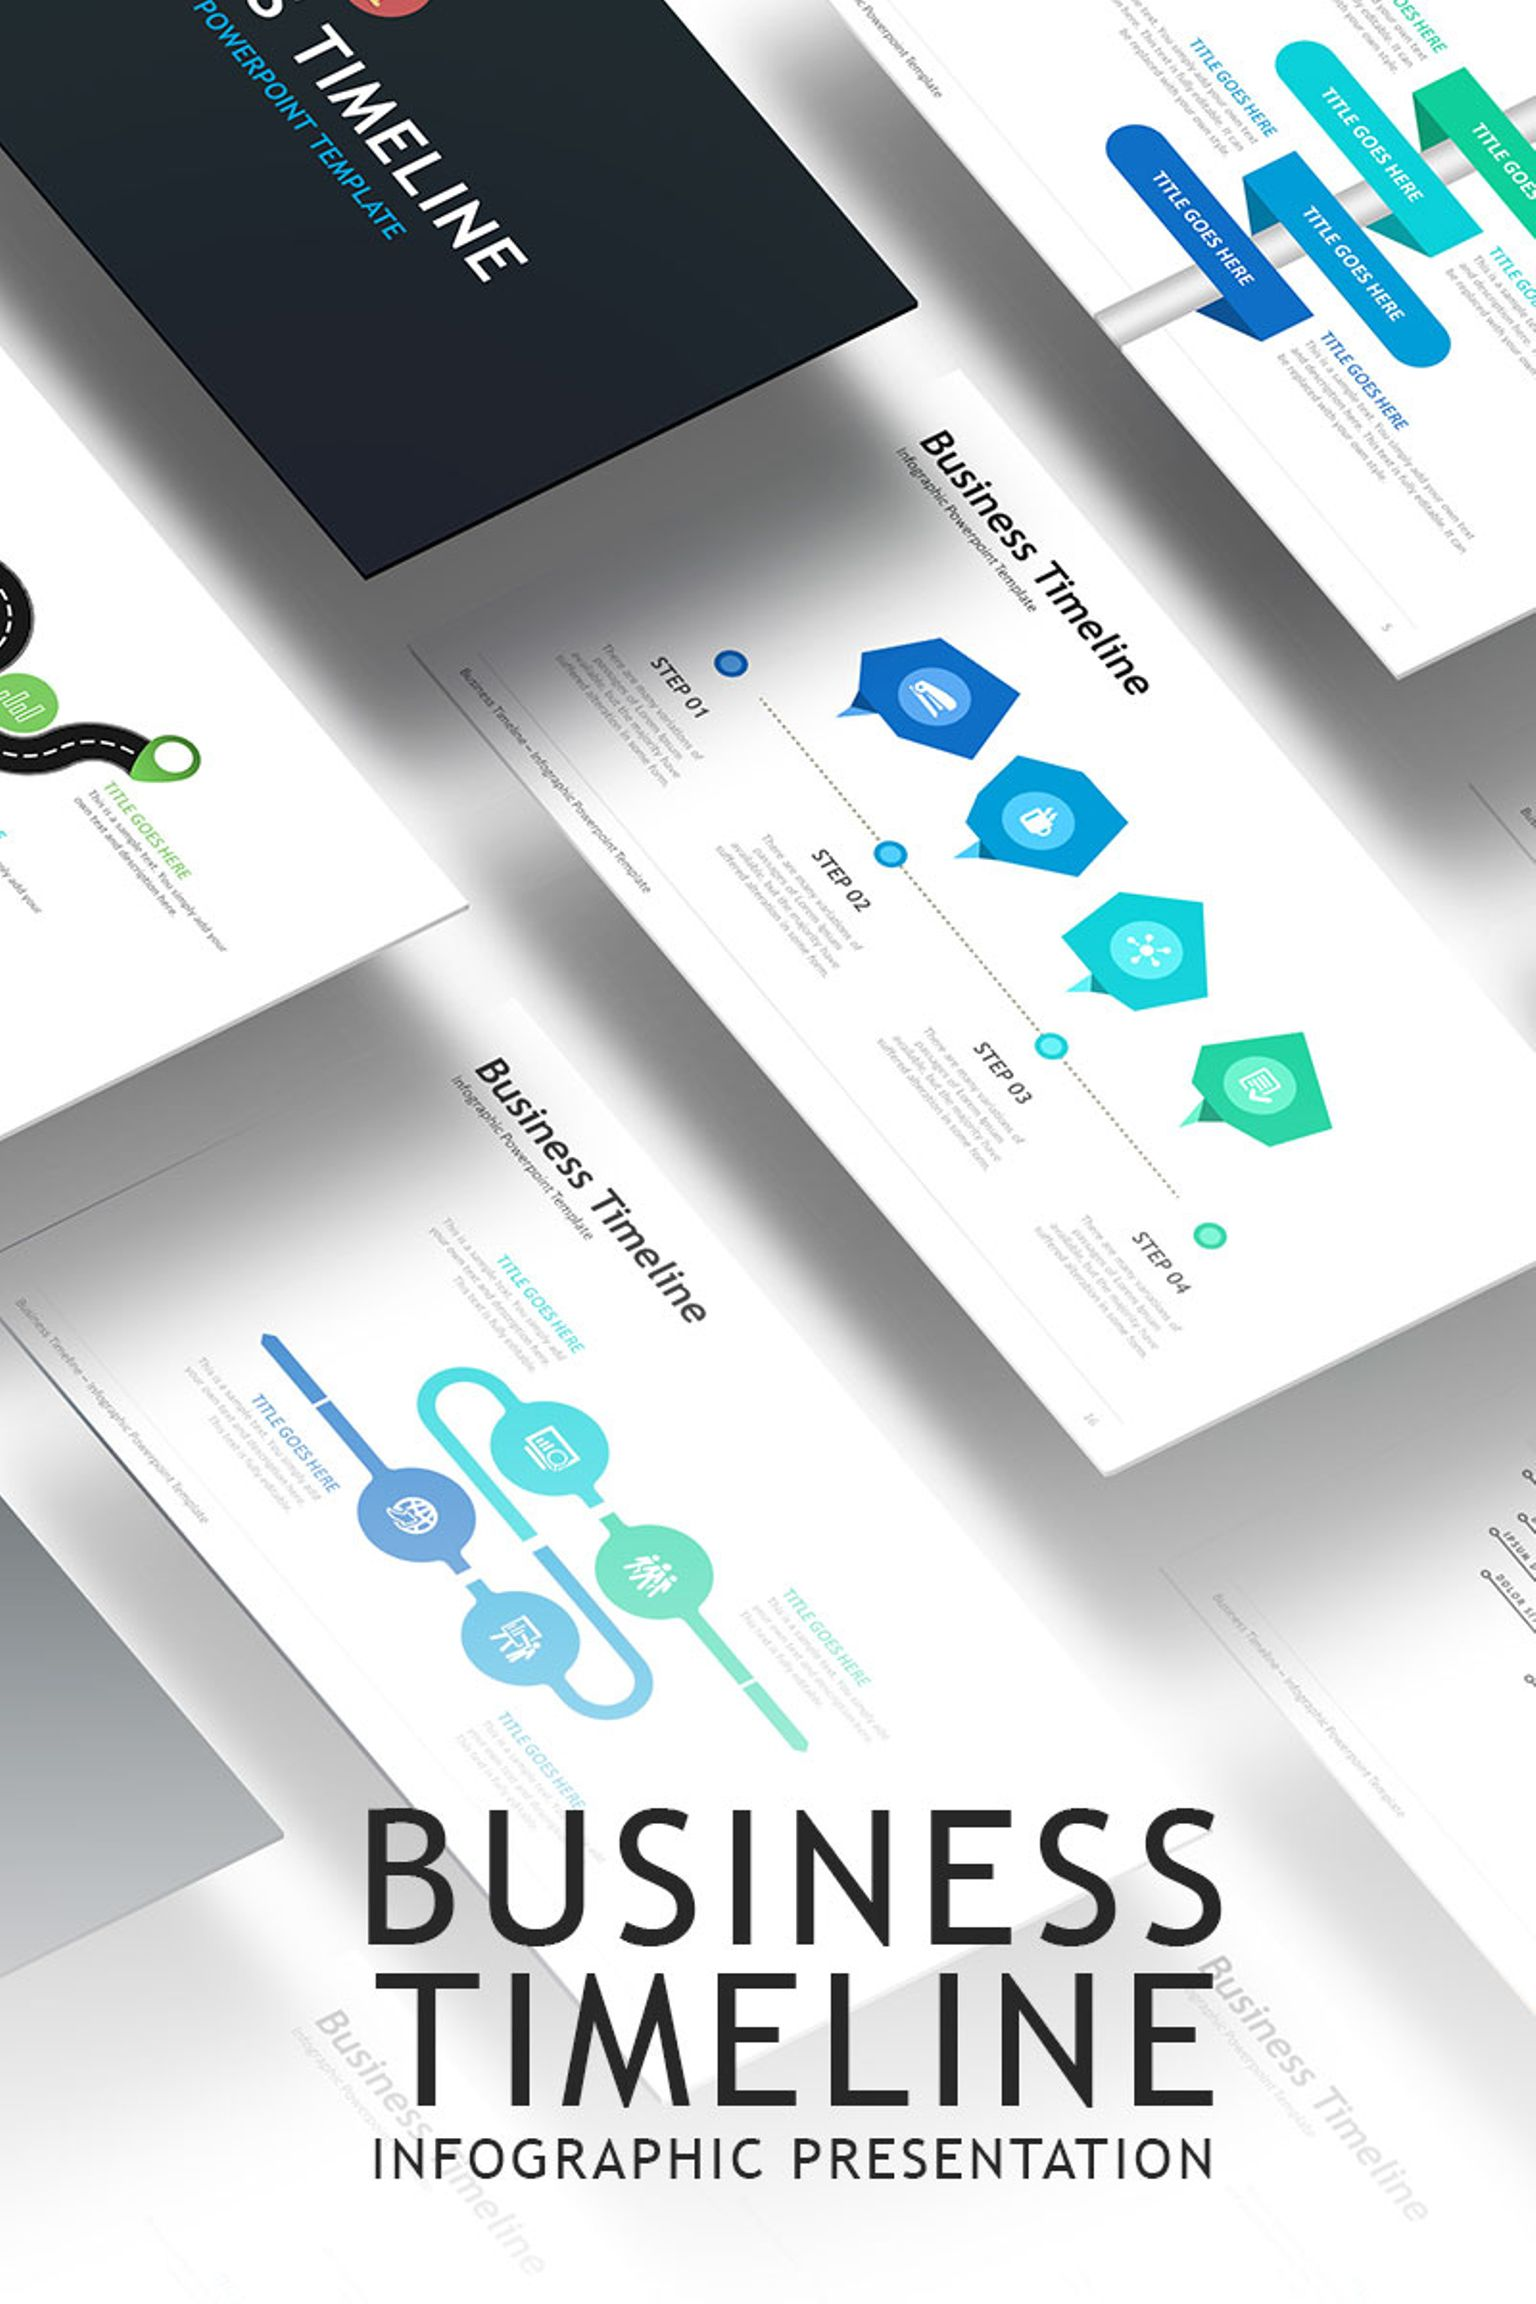 business timeline infographic powerpoint template 67109